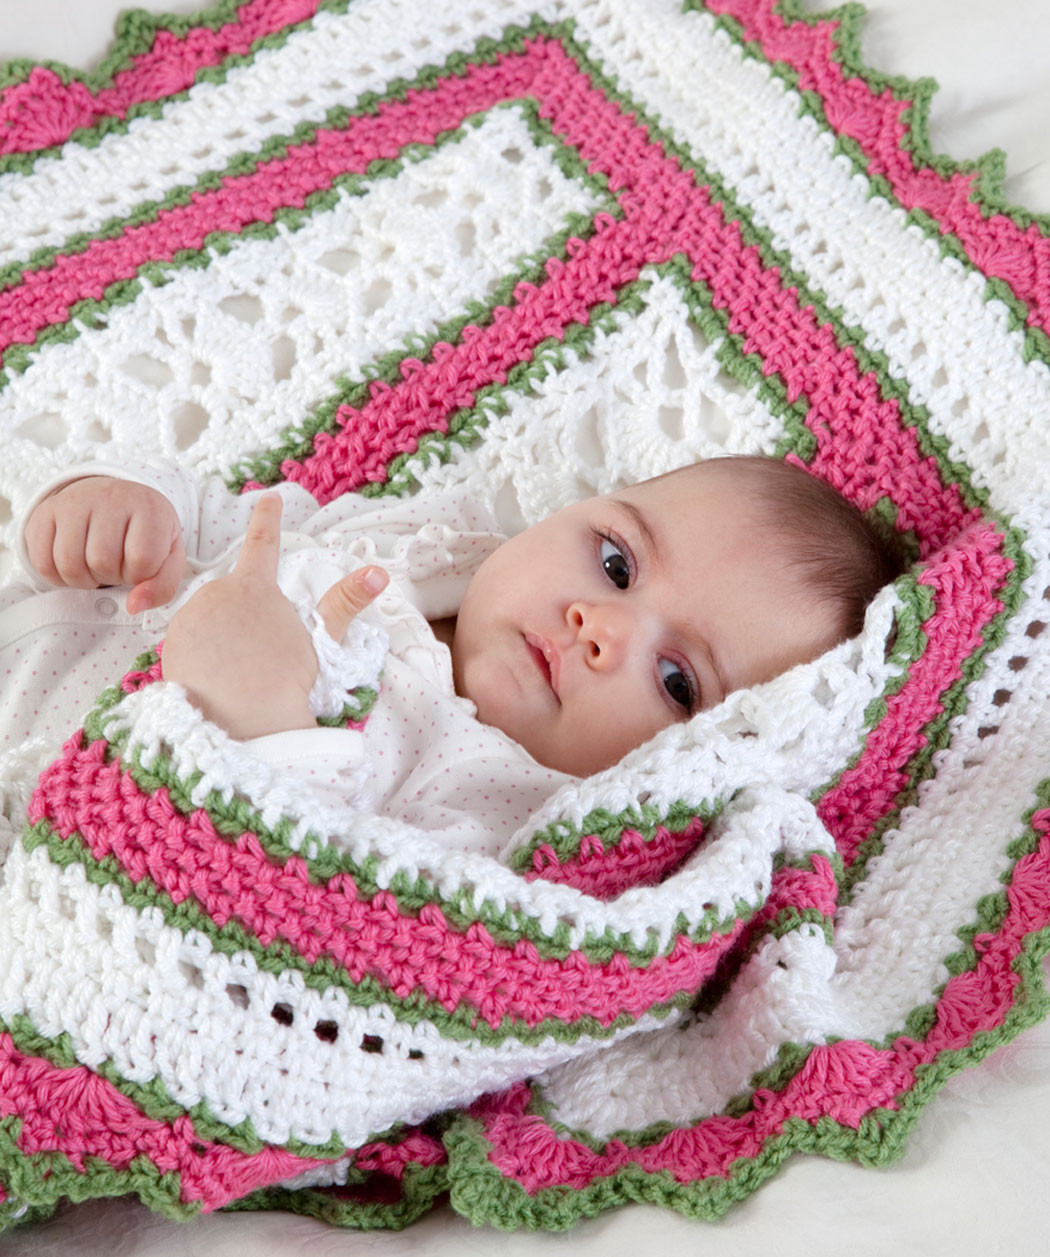 Baby Crochet Patterns Awesome 10 Beautiful Baby Blanket Free Patterns Of Fresh 41 Ideas Baby Crochet Patterns